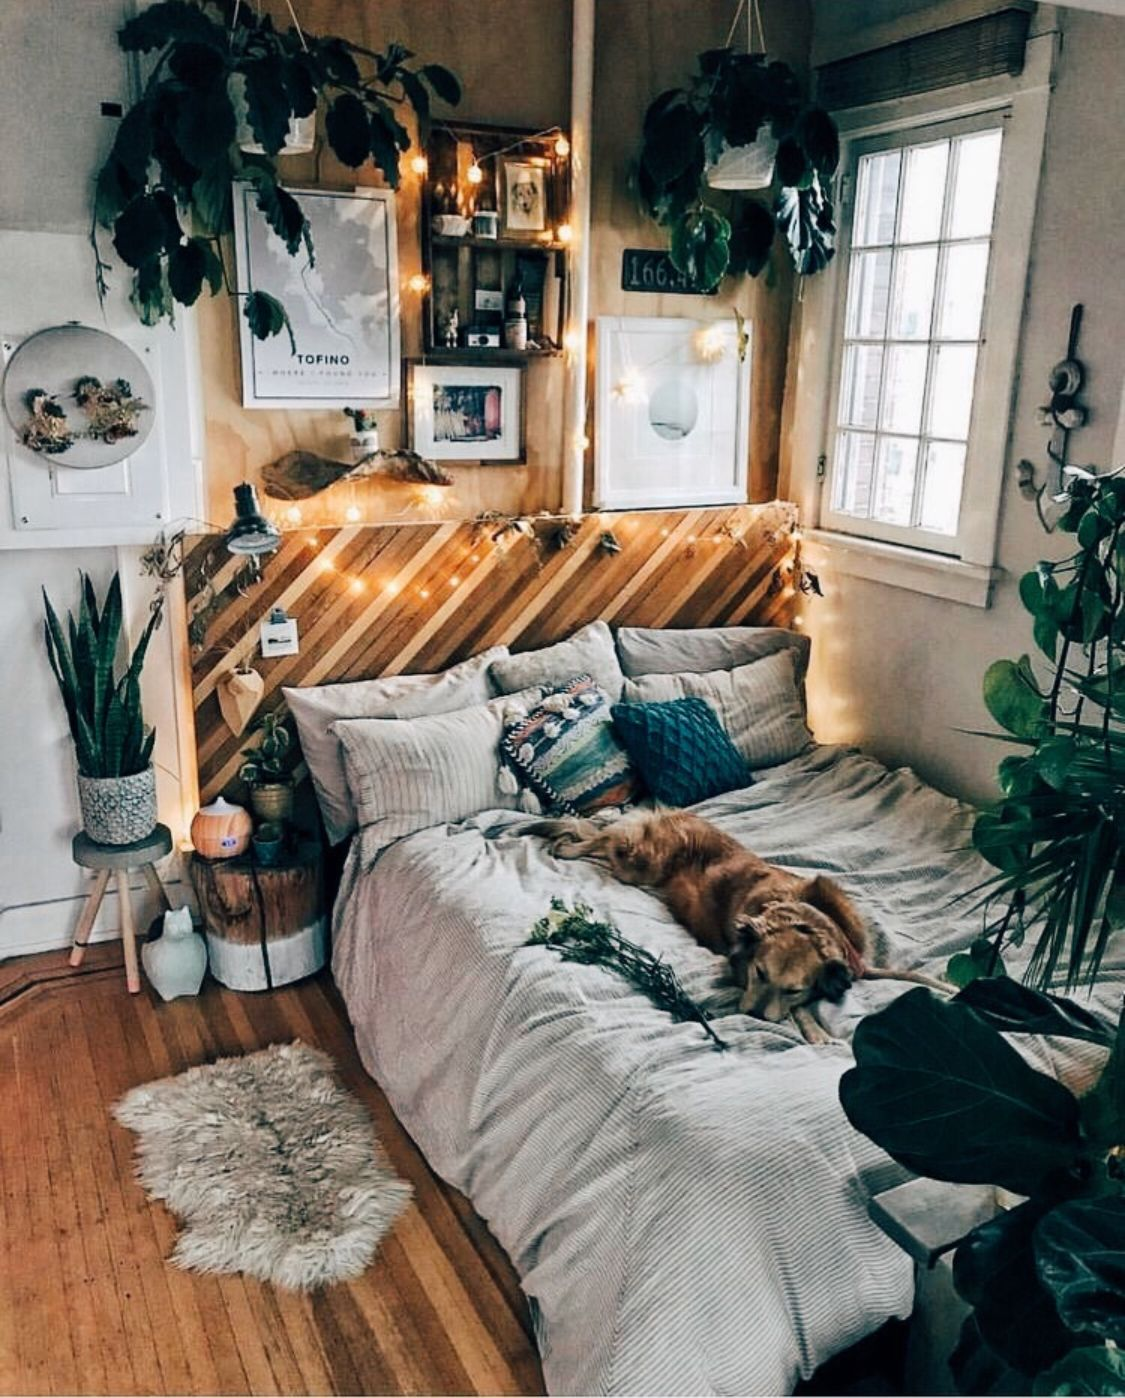 Bedroom Cute Comfy Cozy Plants Lights In 2019